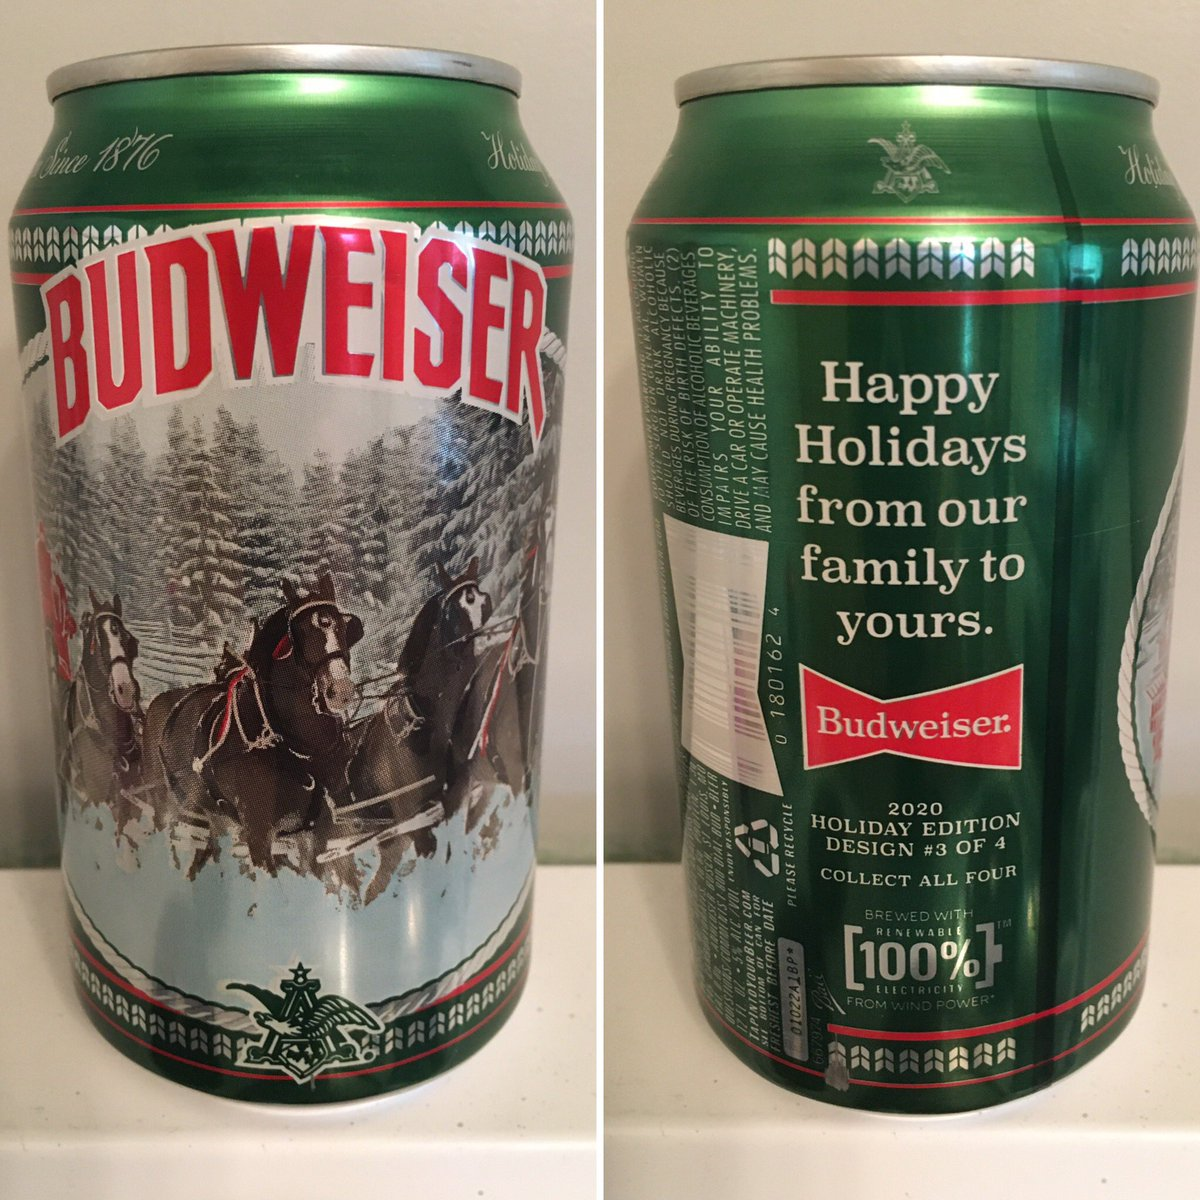 @Budweiser @budweiserusa 2020 Holiday Edition Design 3 of 4 #canmuseum